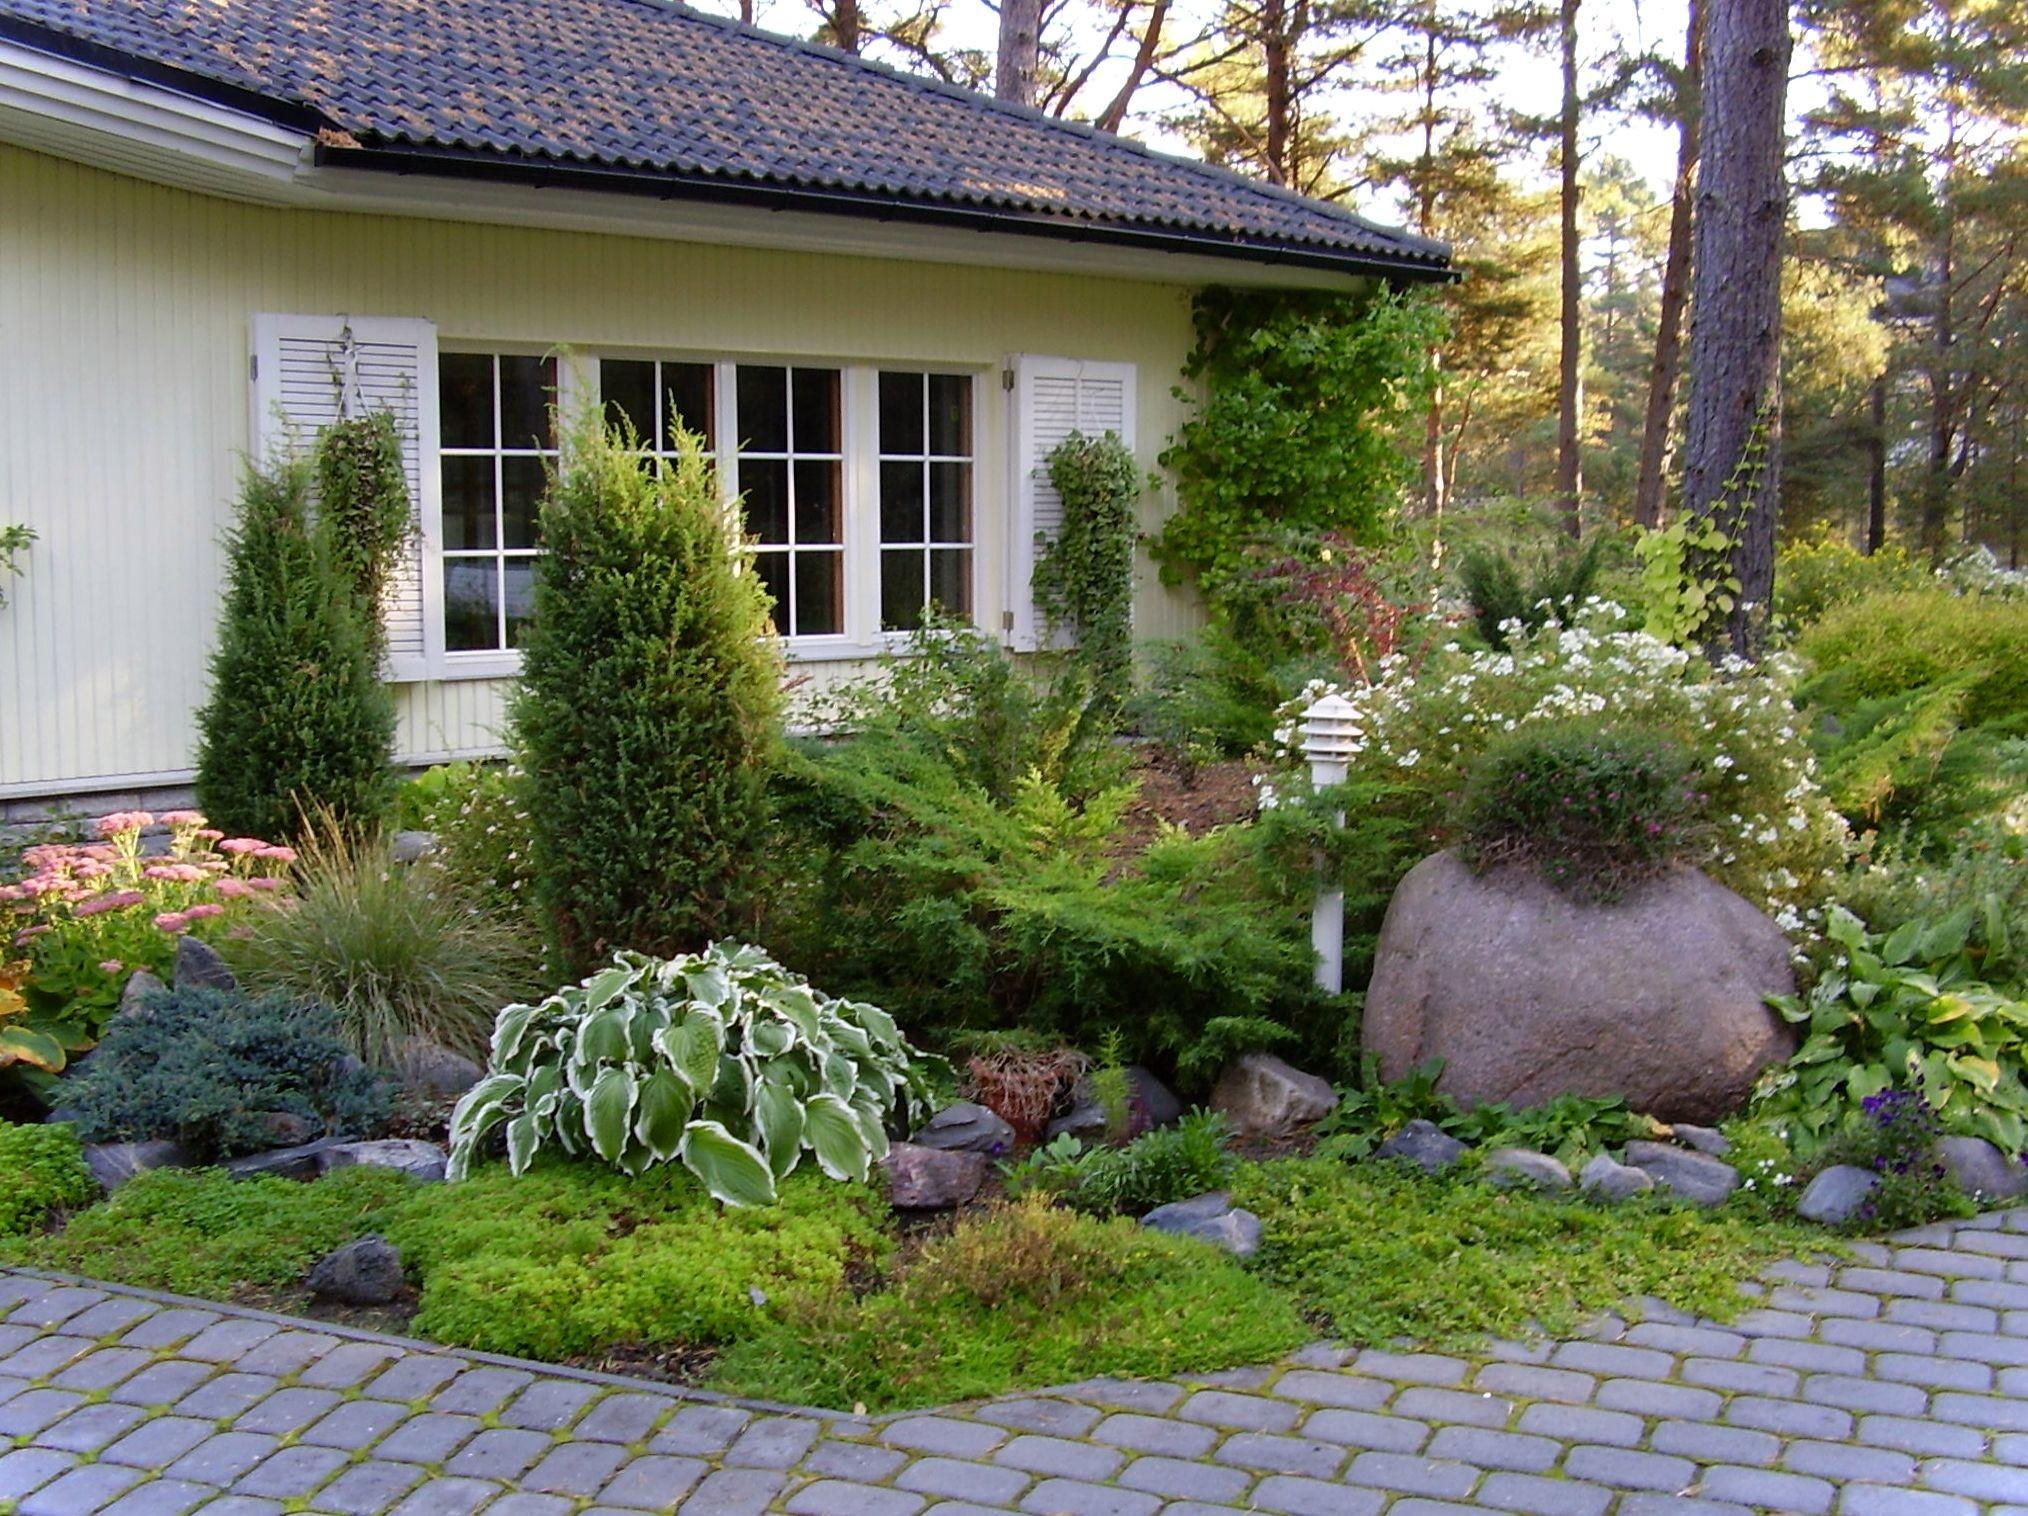 Landscaping Home Garden Design Cottage